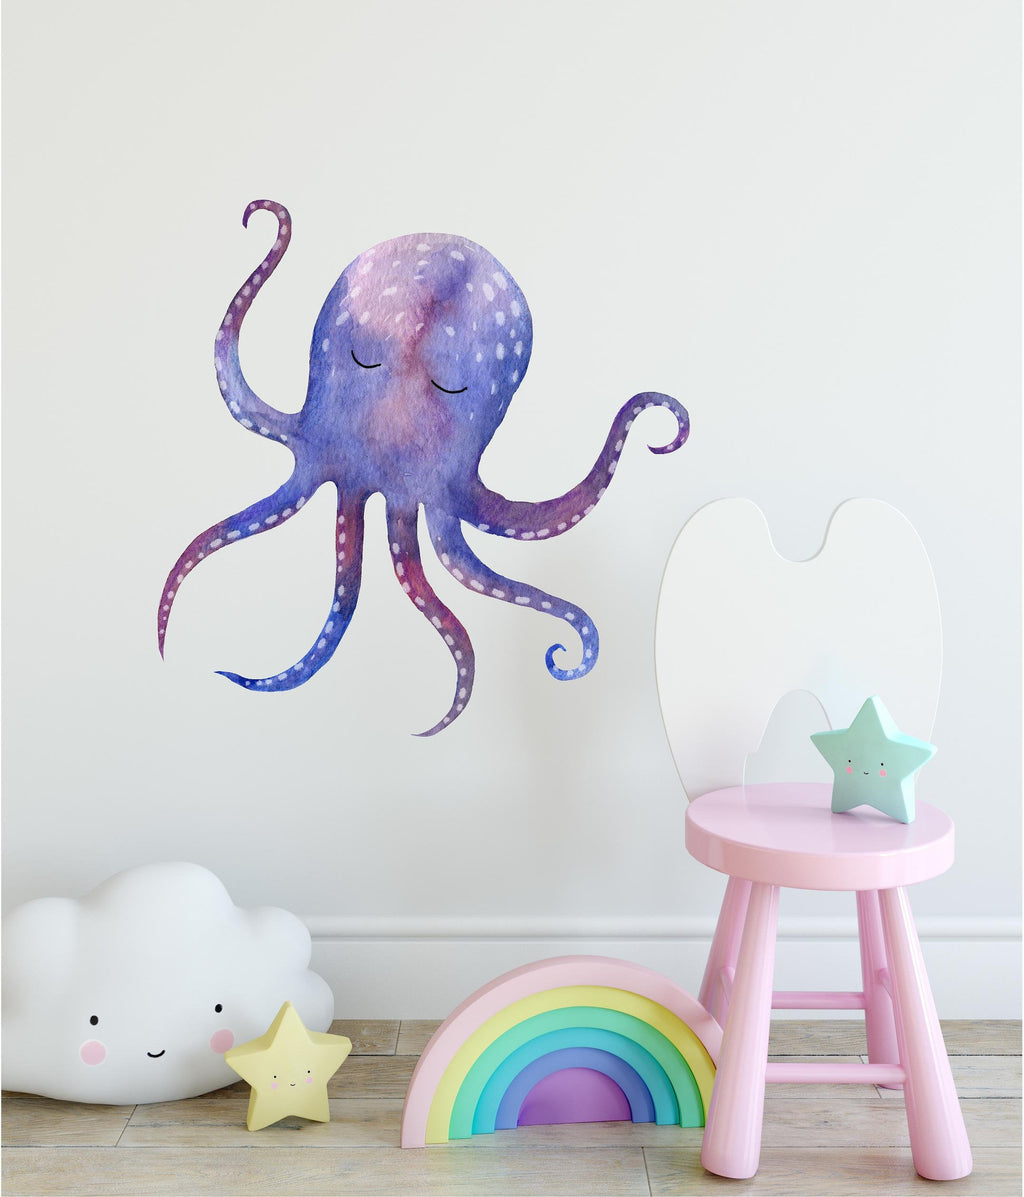 Sleepy Octopus Watercolor Wall Decal Whimsical Removable Fabric Vinyl Wall Sticker